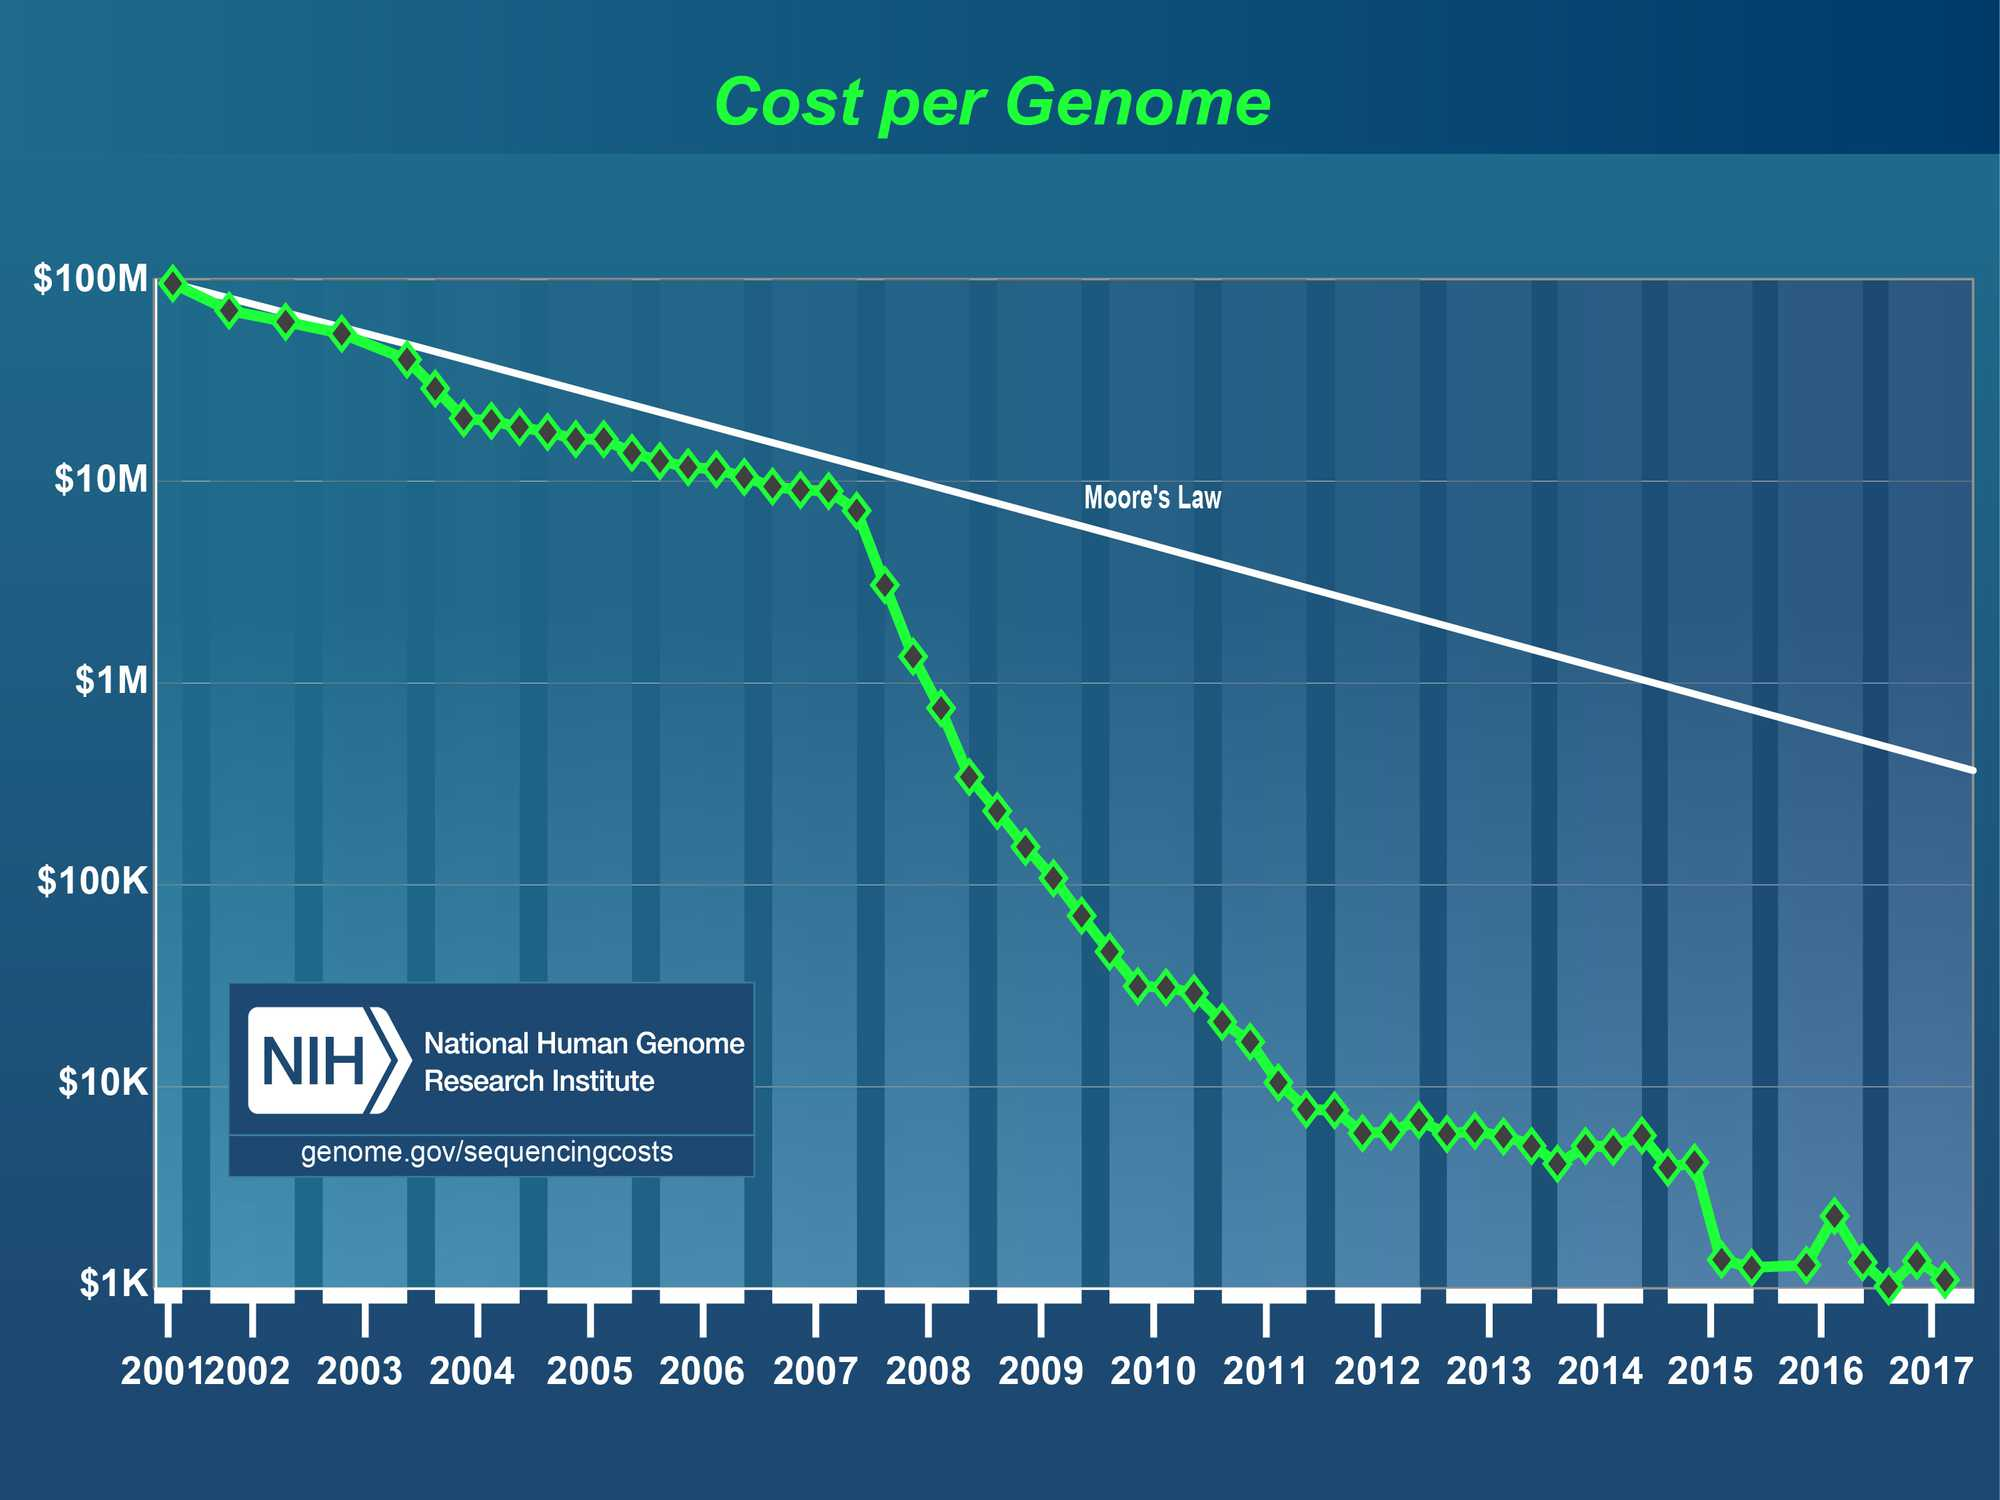 Cost per Genome in sequencing